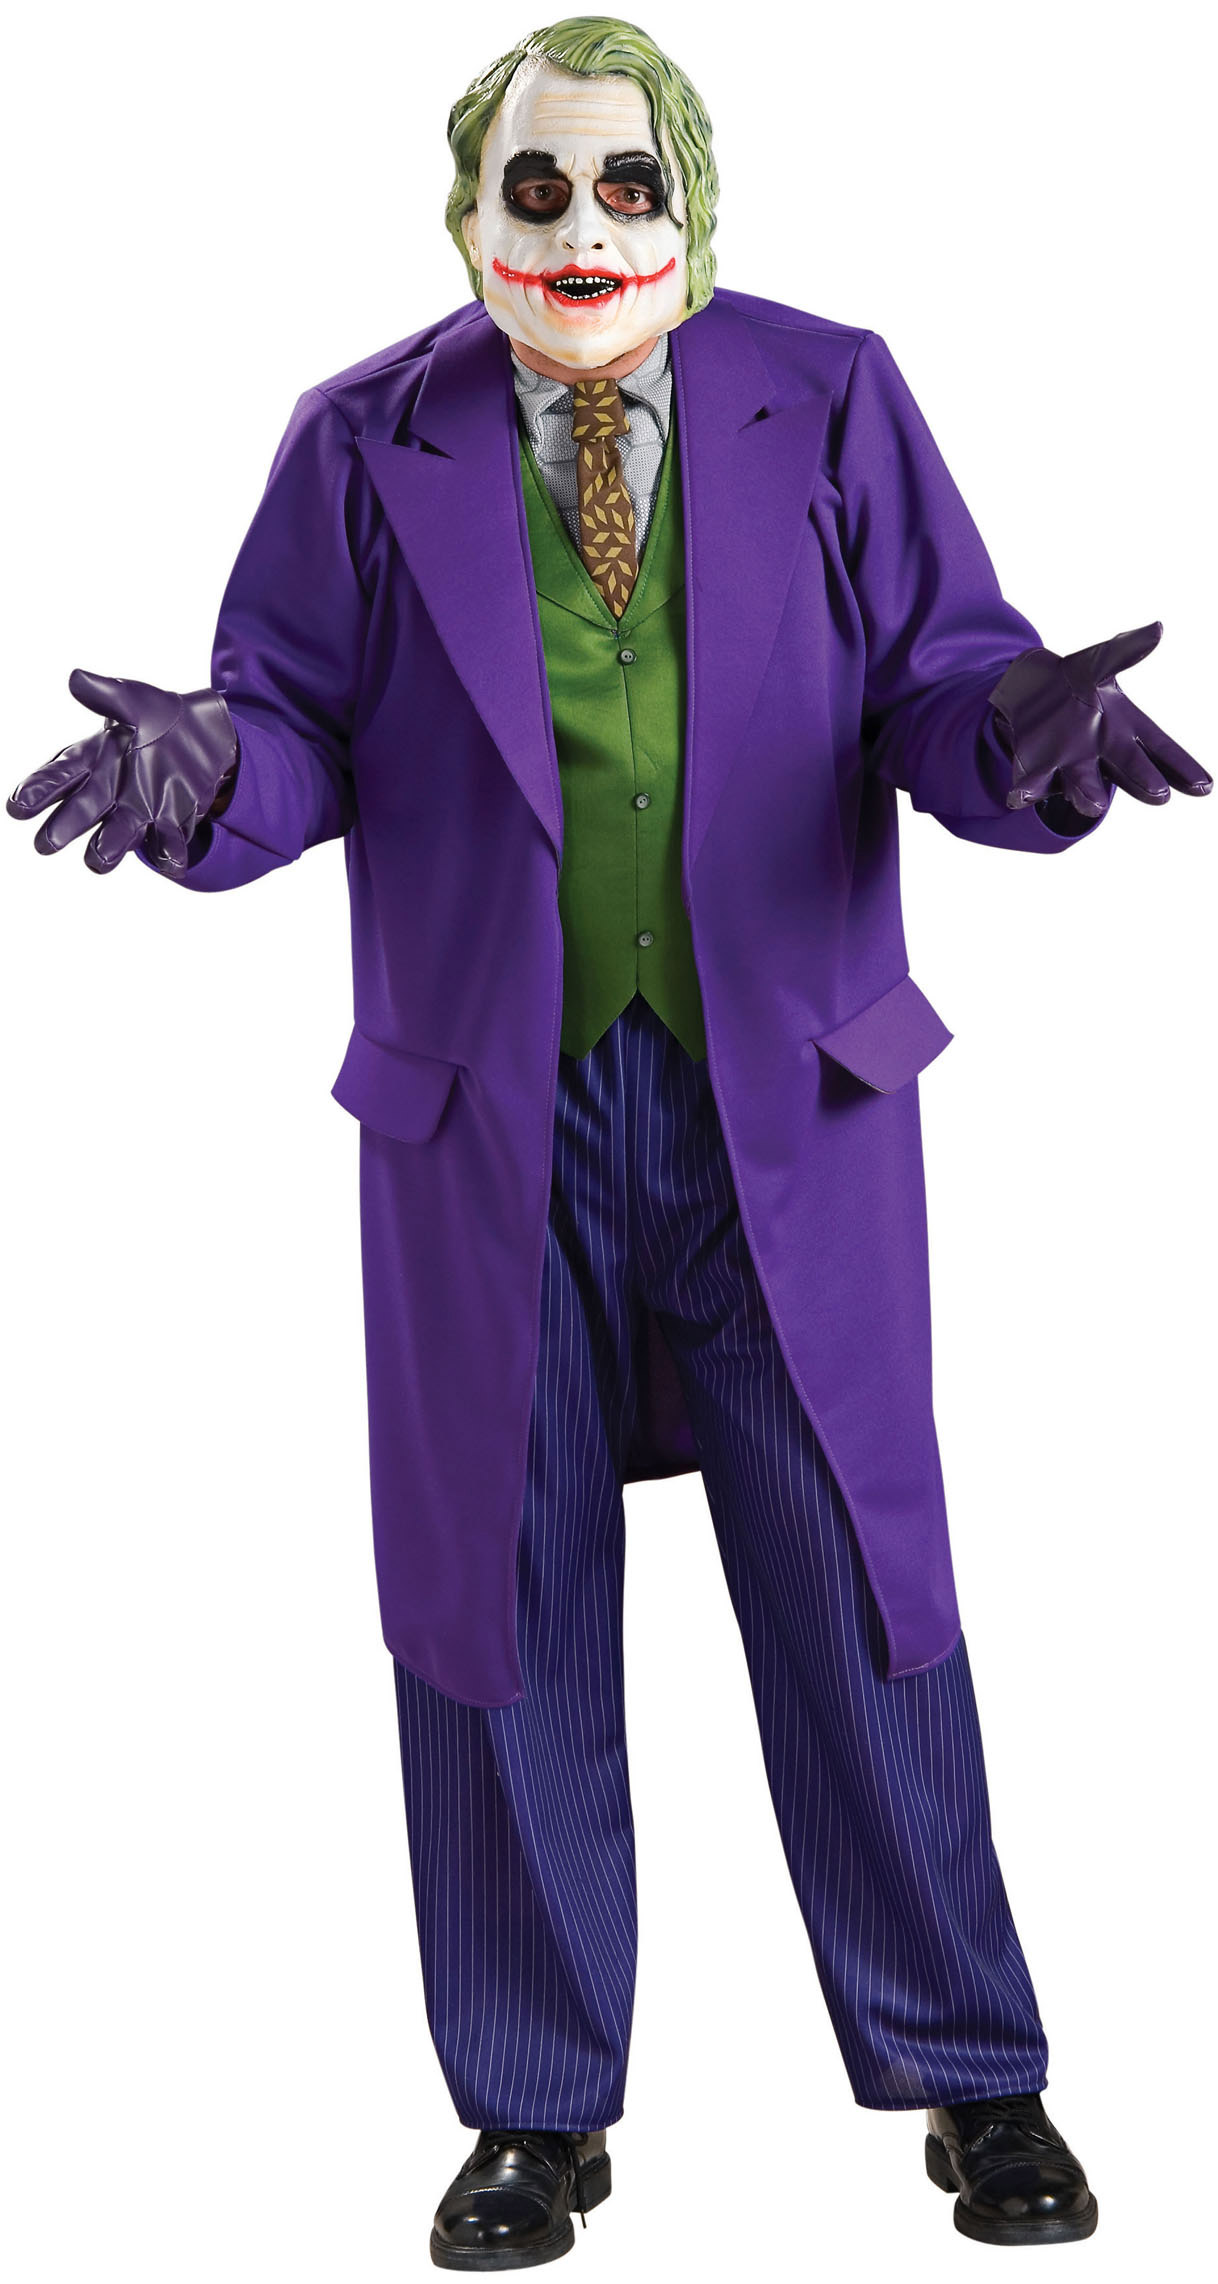 d guisement de joker batman costume adulte du joker. Black Bedroom Furniture Sets. Home Design Ideas